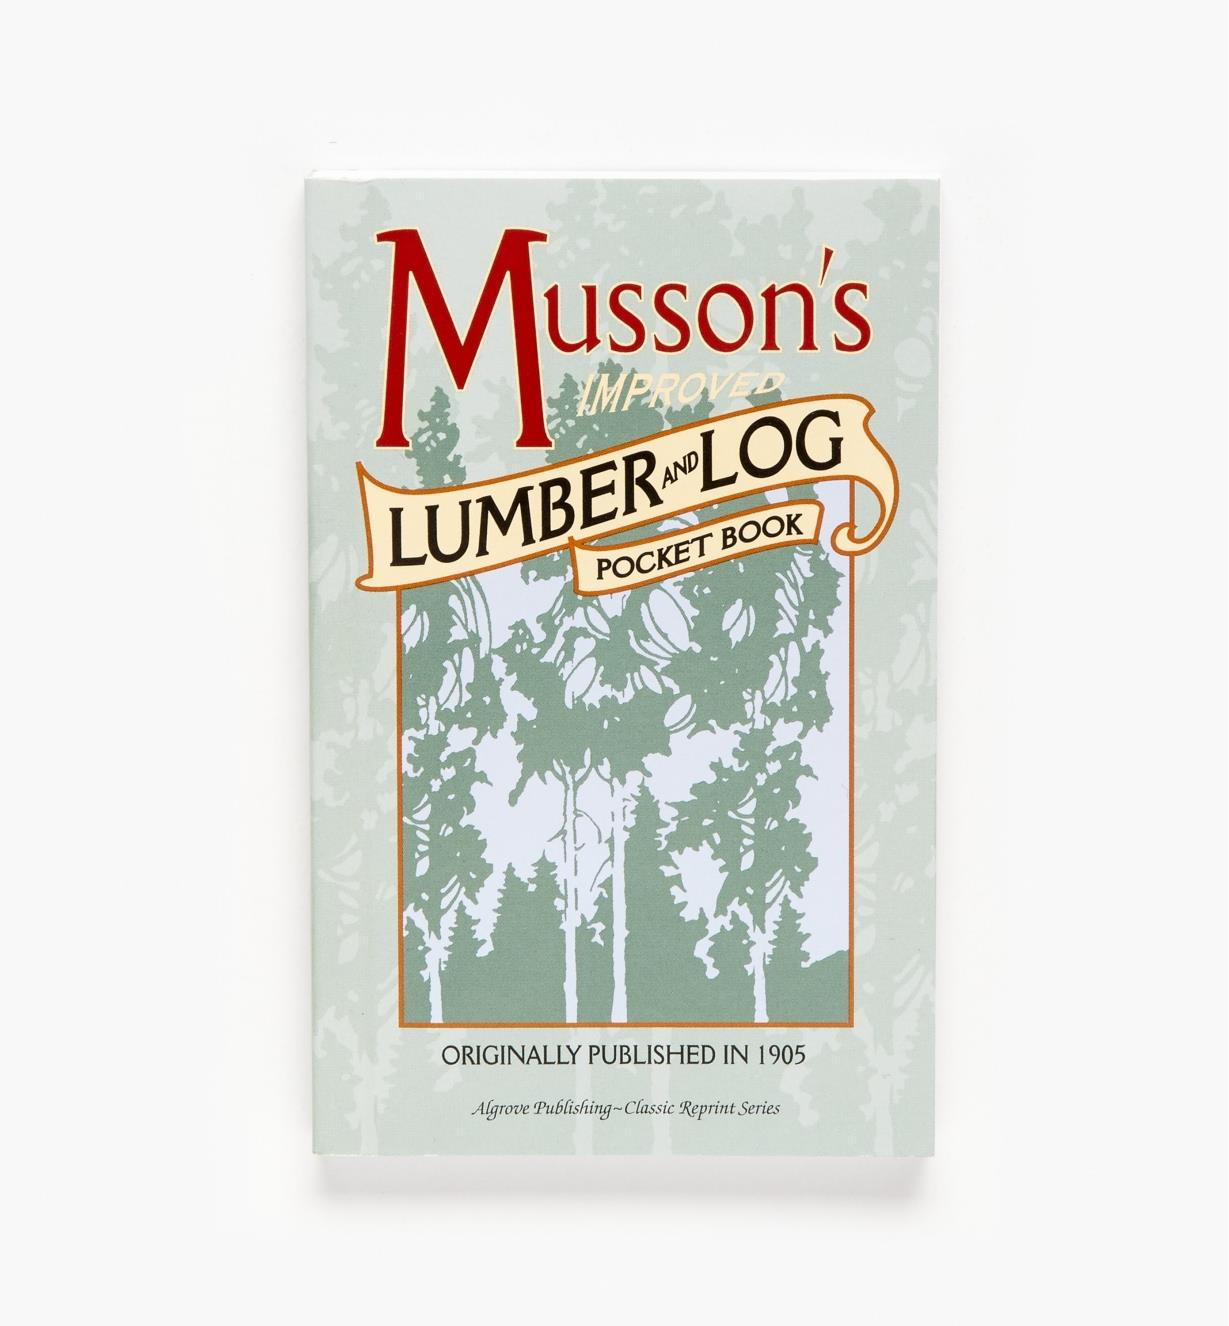 49L8135 - Musson's Improved Lumber and Log Pocket Book